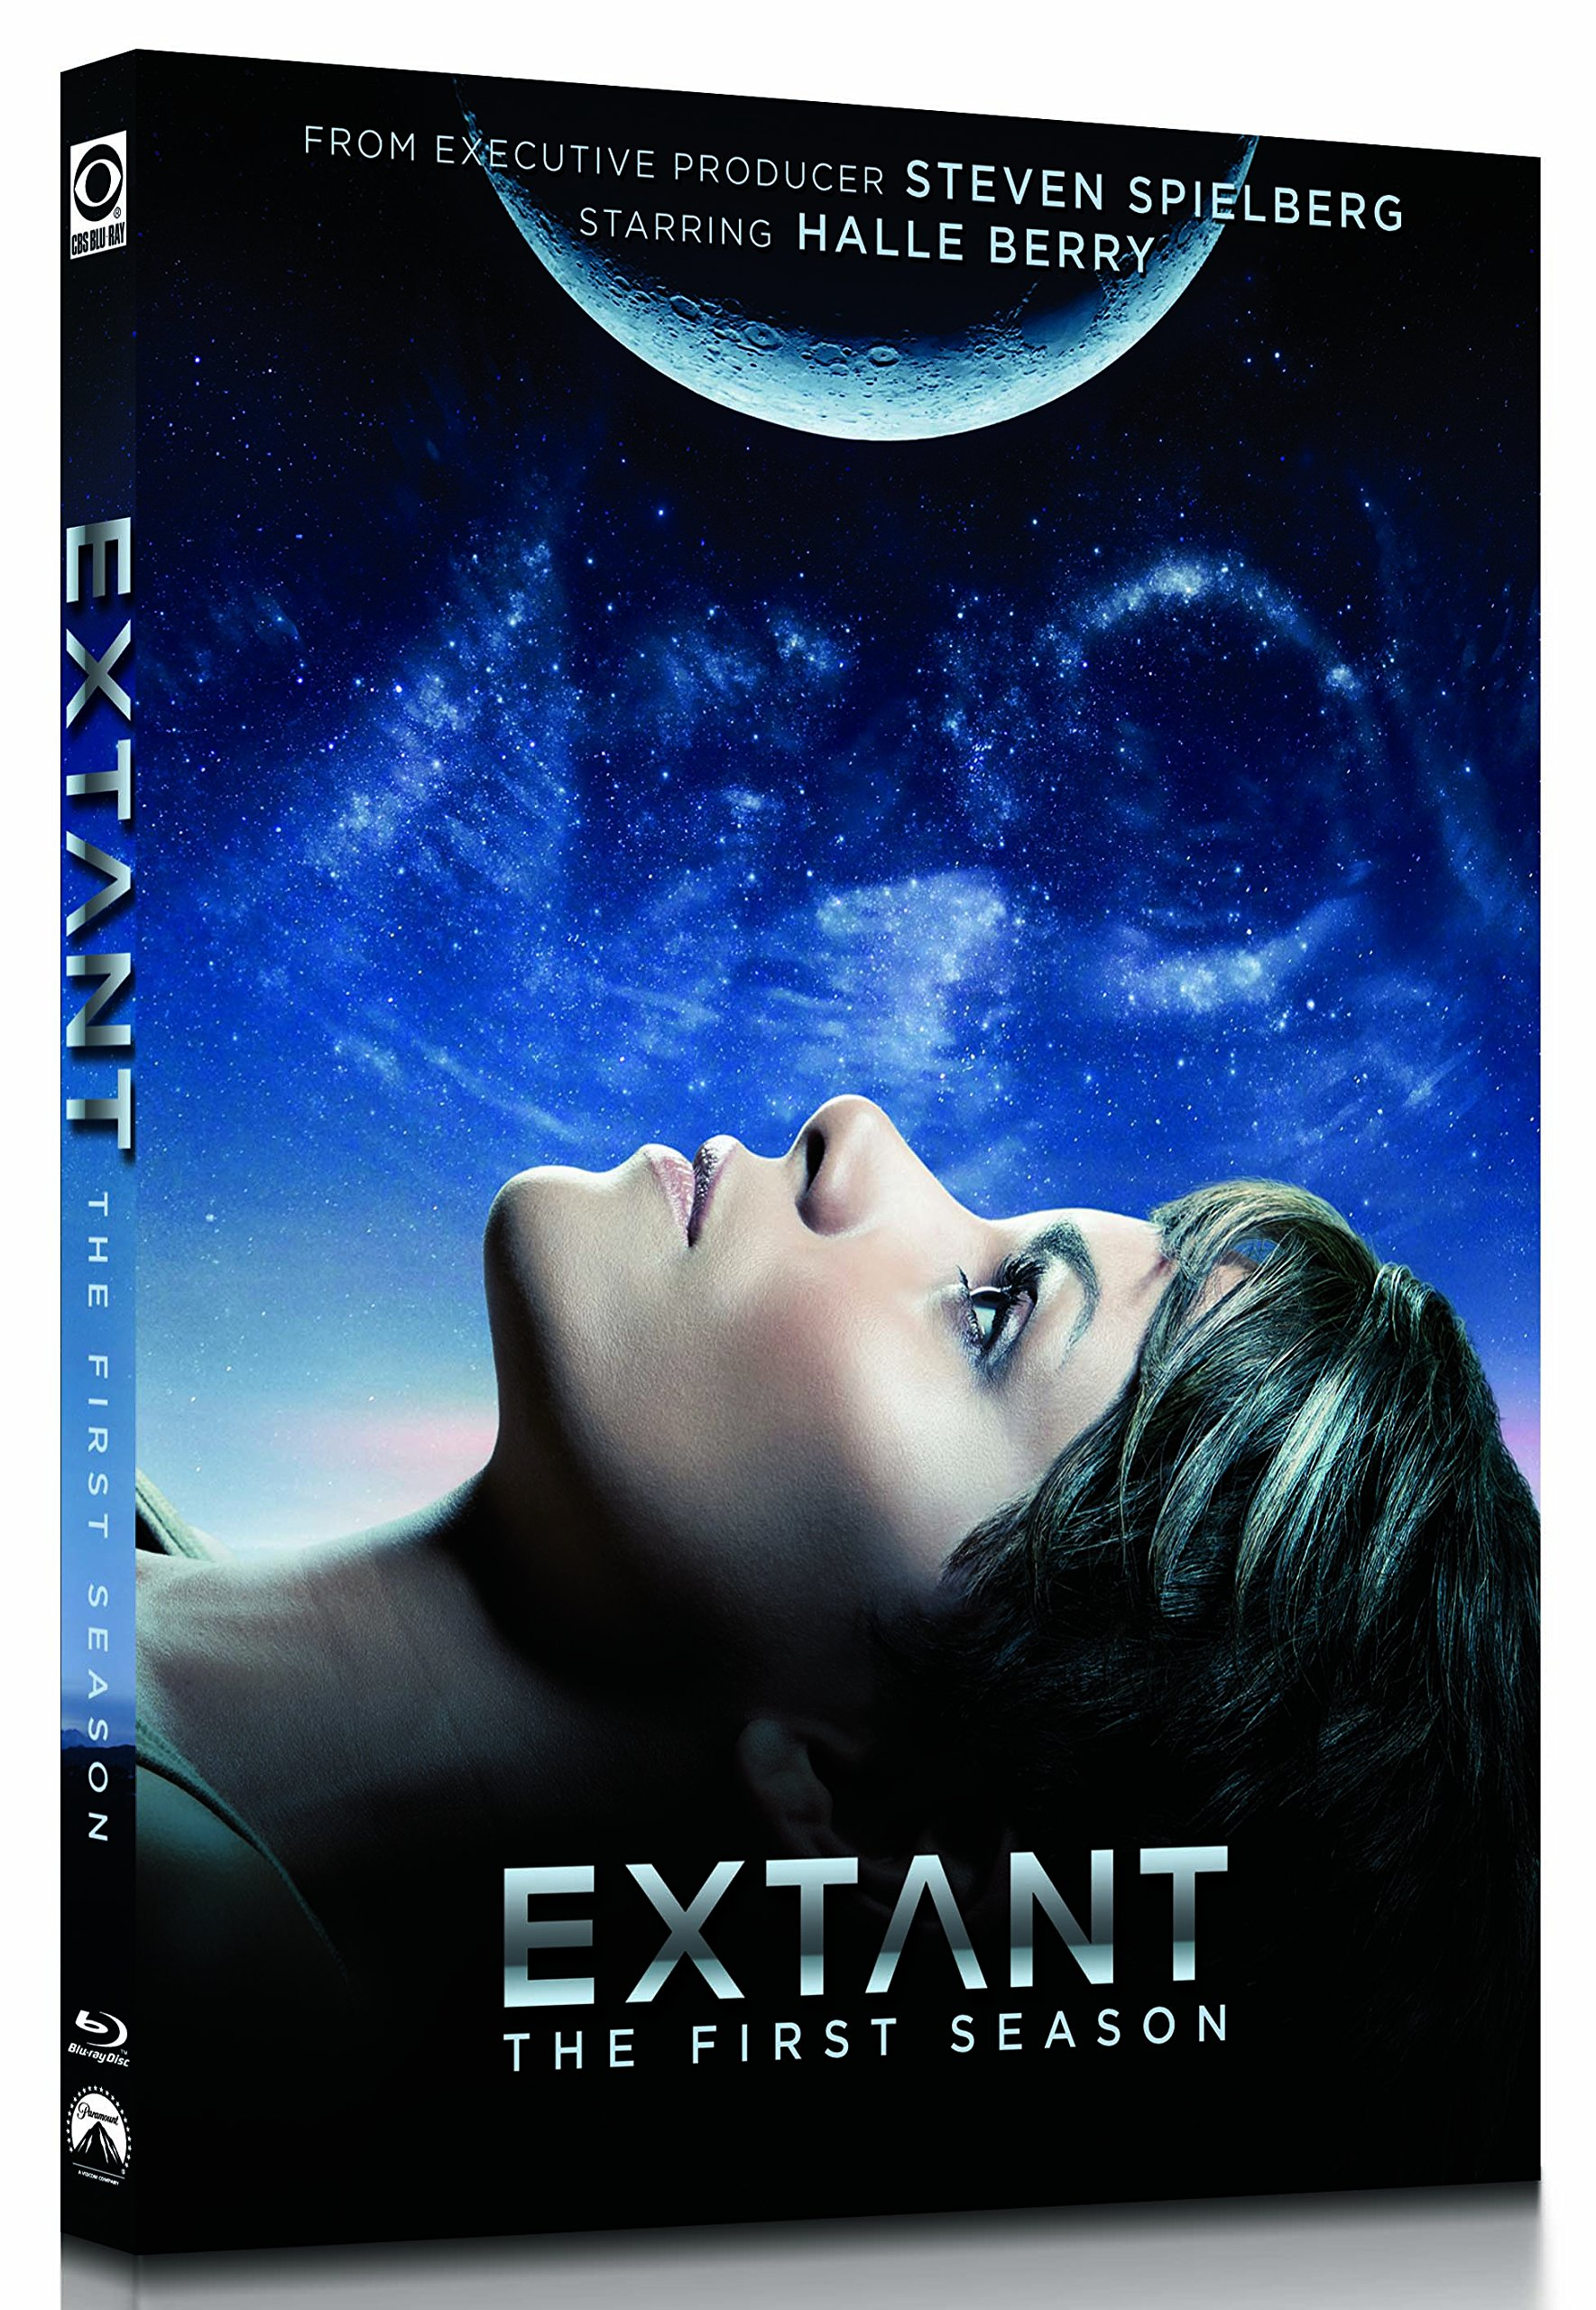 Blu-ray : Extant: The First Season (Boxed Set, Widescreen, Digipack Packaging, Digital Theater System, 4 Disc)